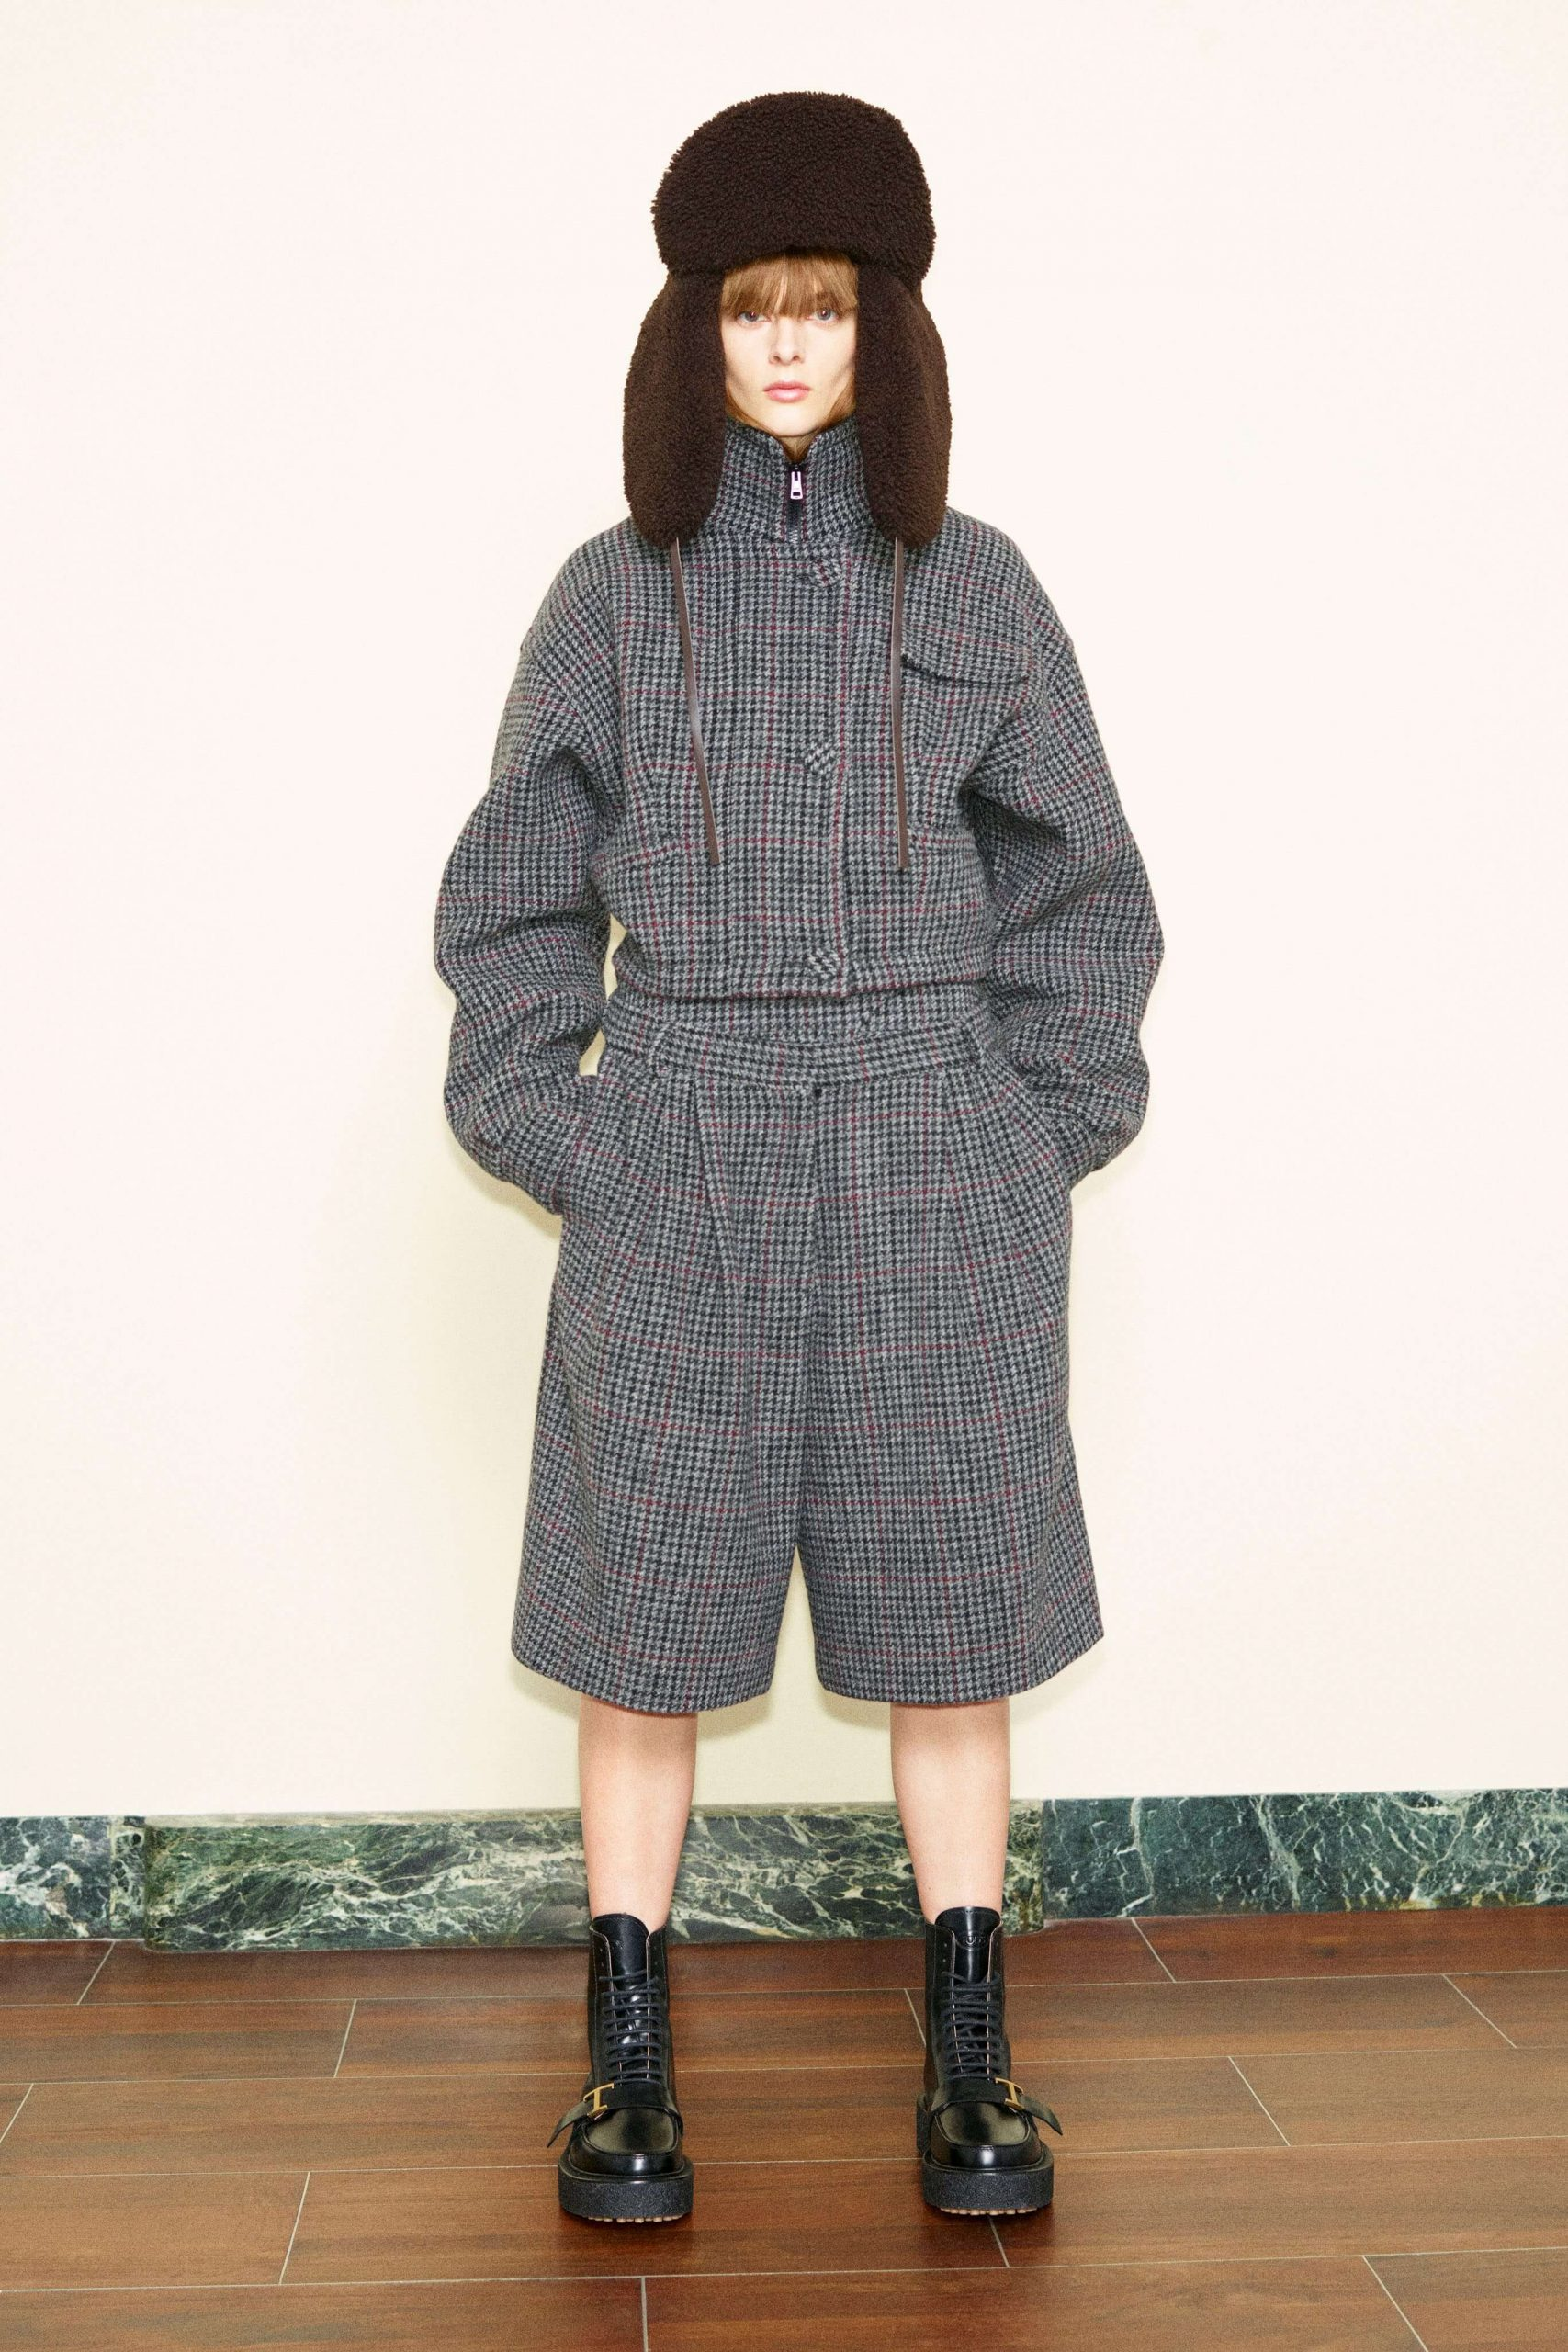 00002 Tods Fall 21